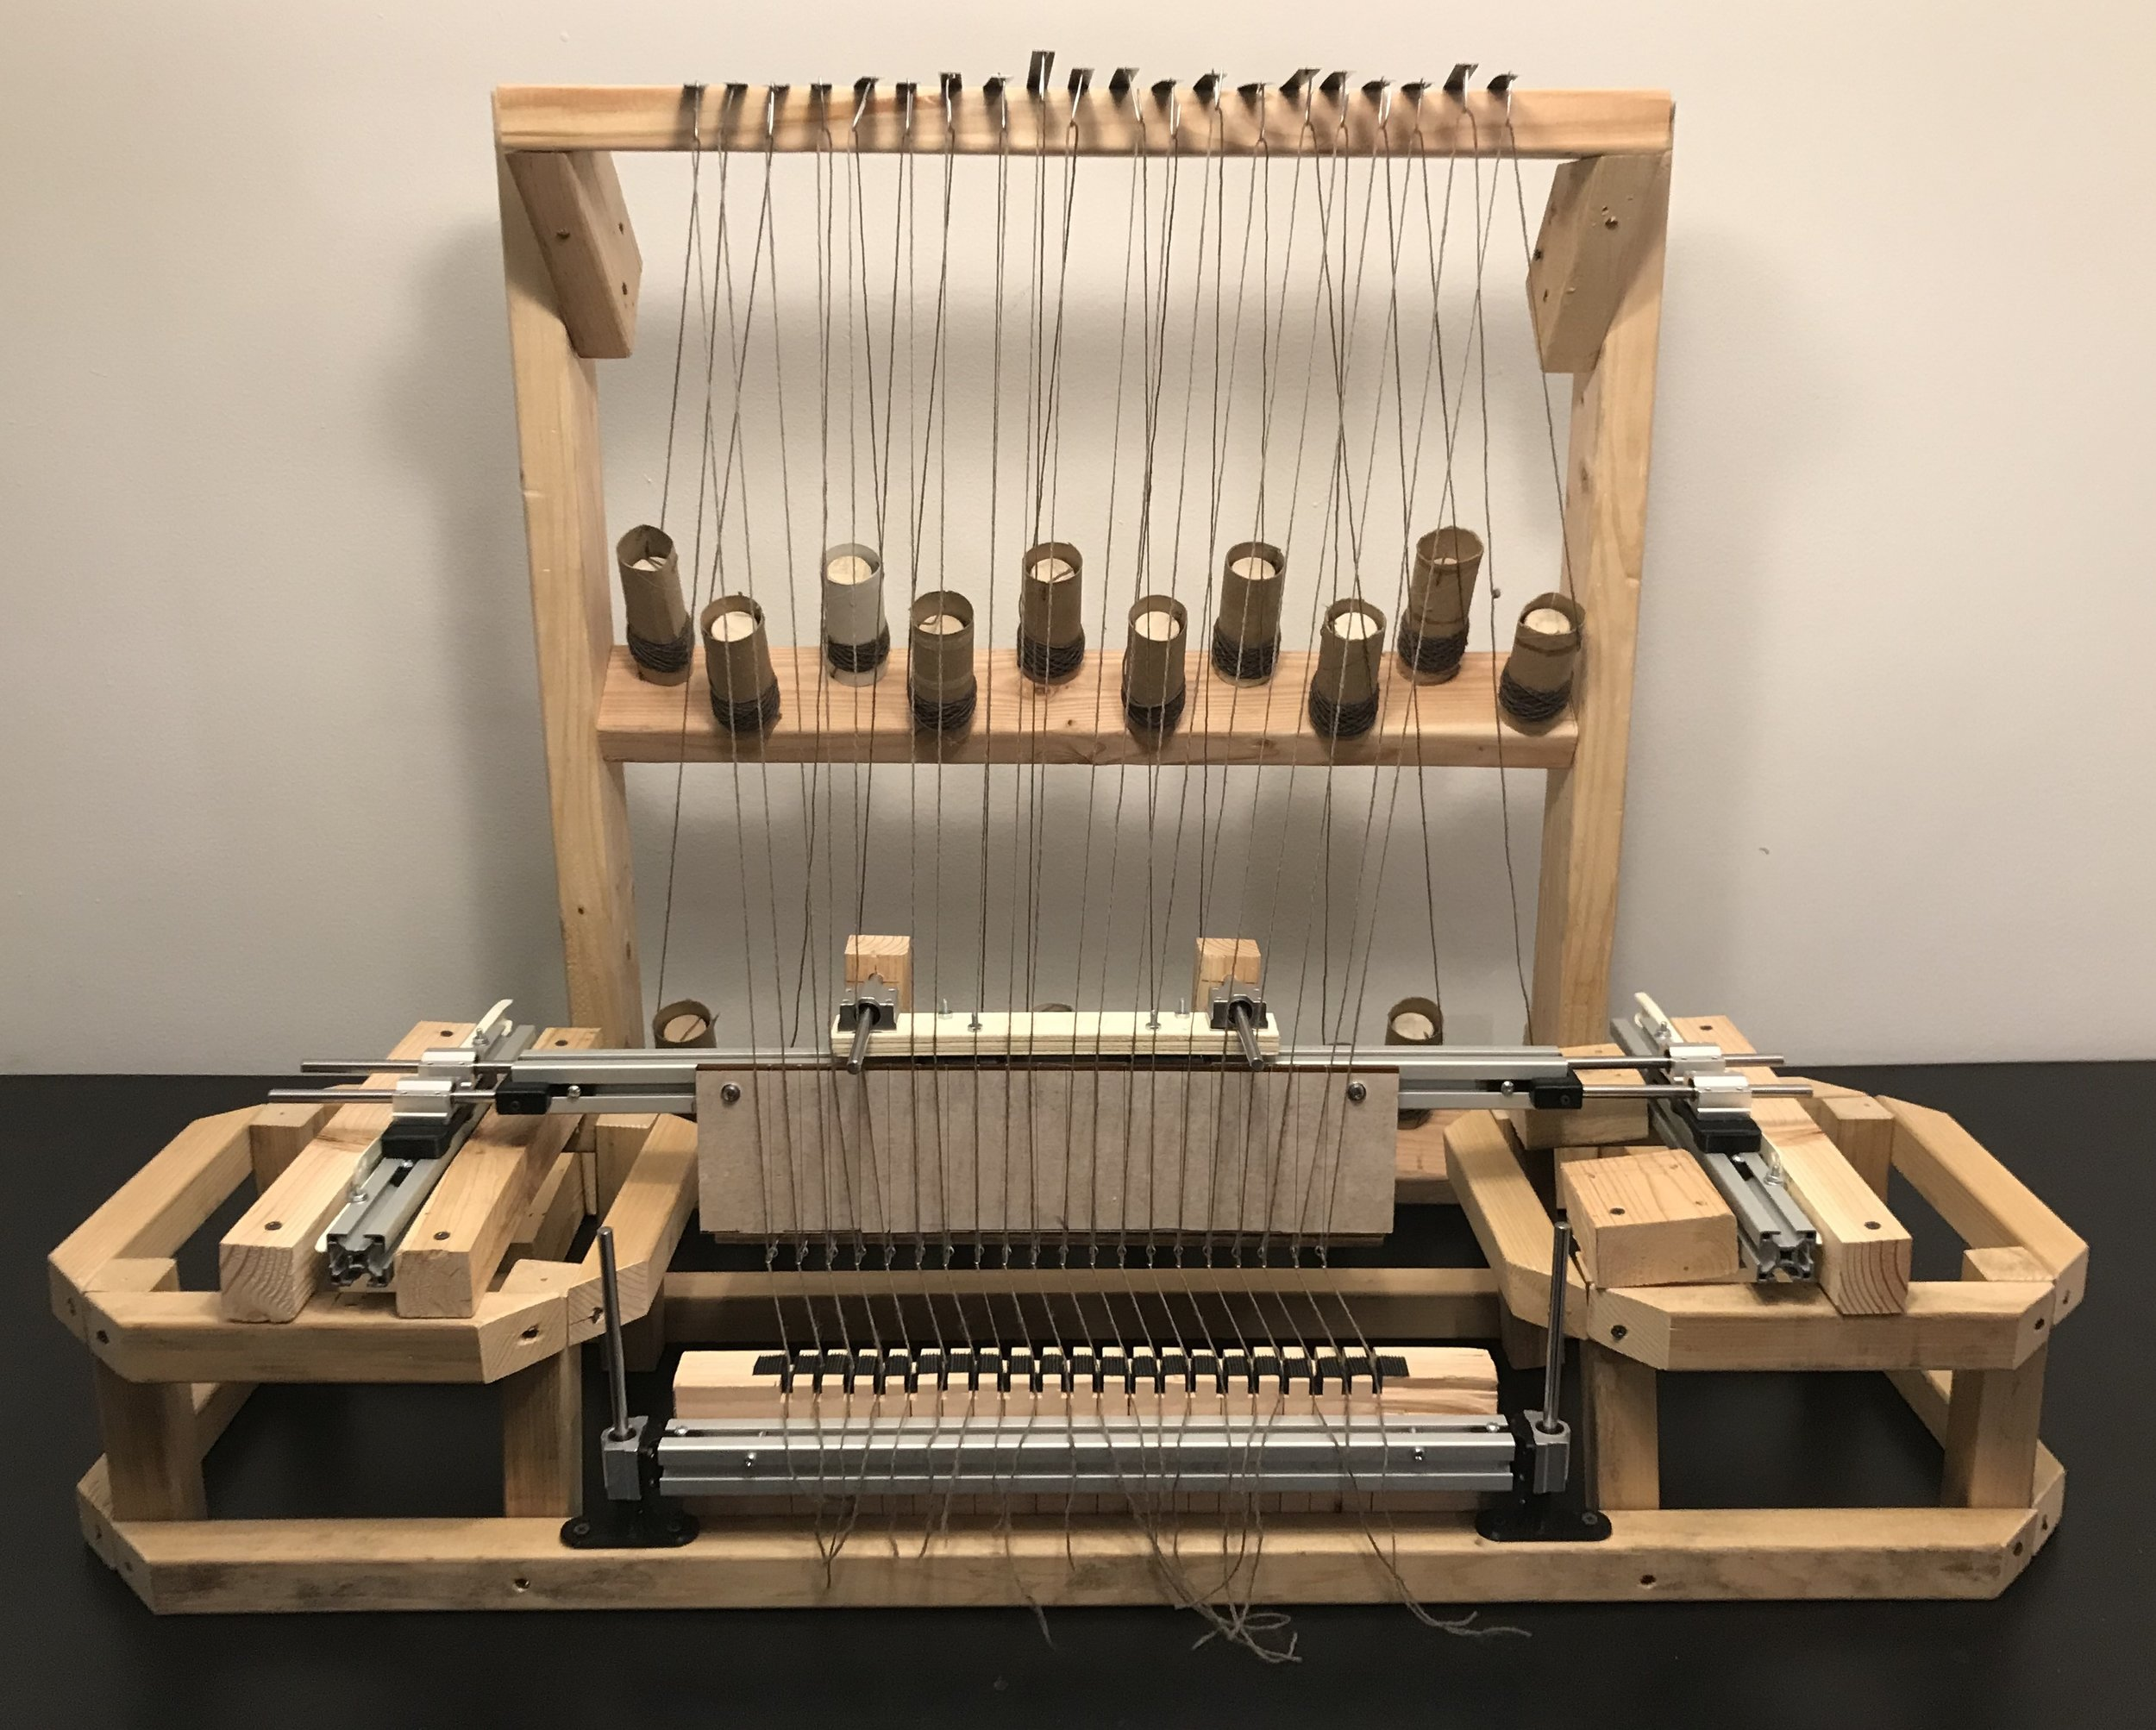 Warp Knitting Machine Prototype  - I created a threading mechanism for an at home warp knitting machine that decreases the loading time by 45%